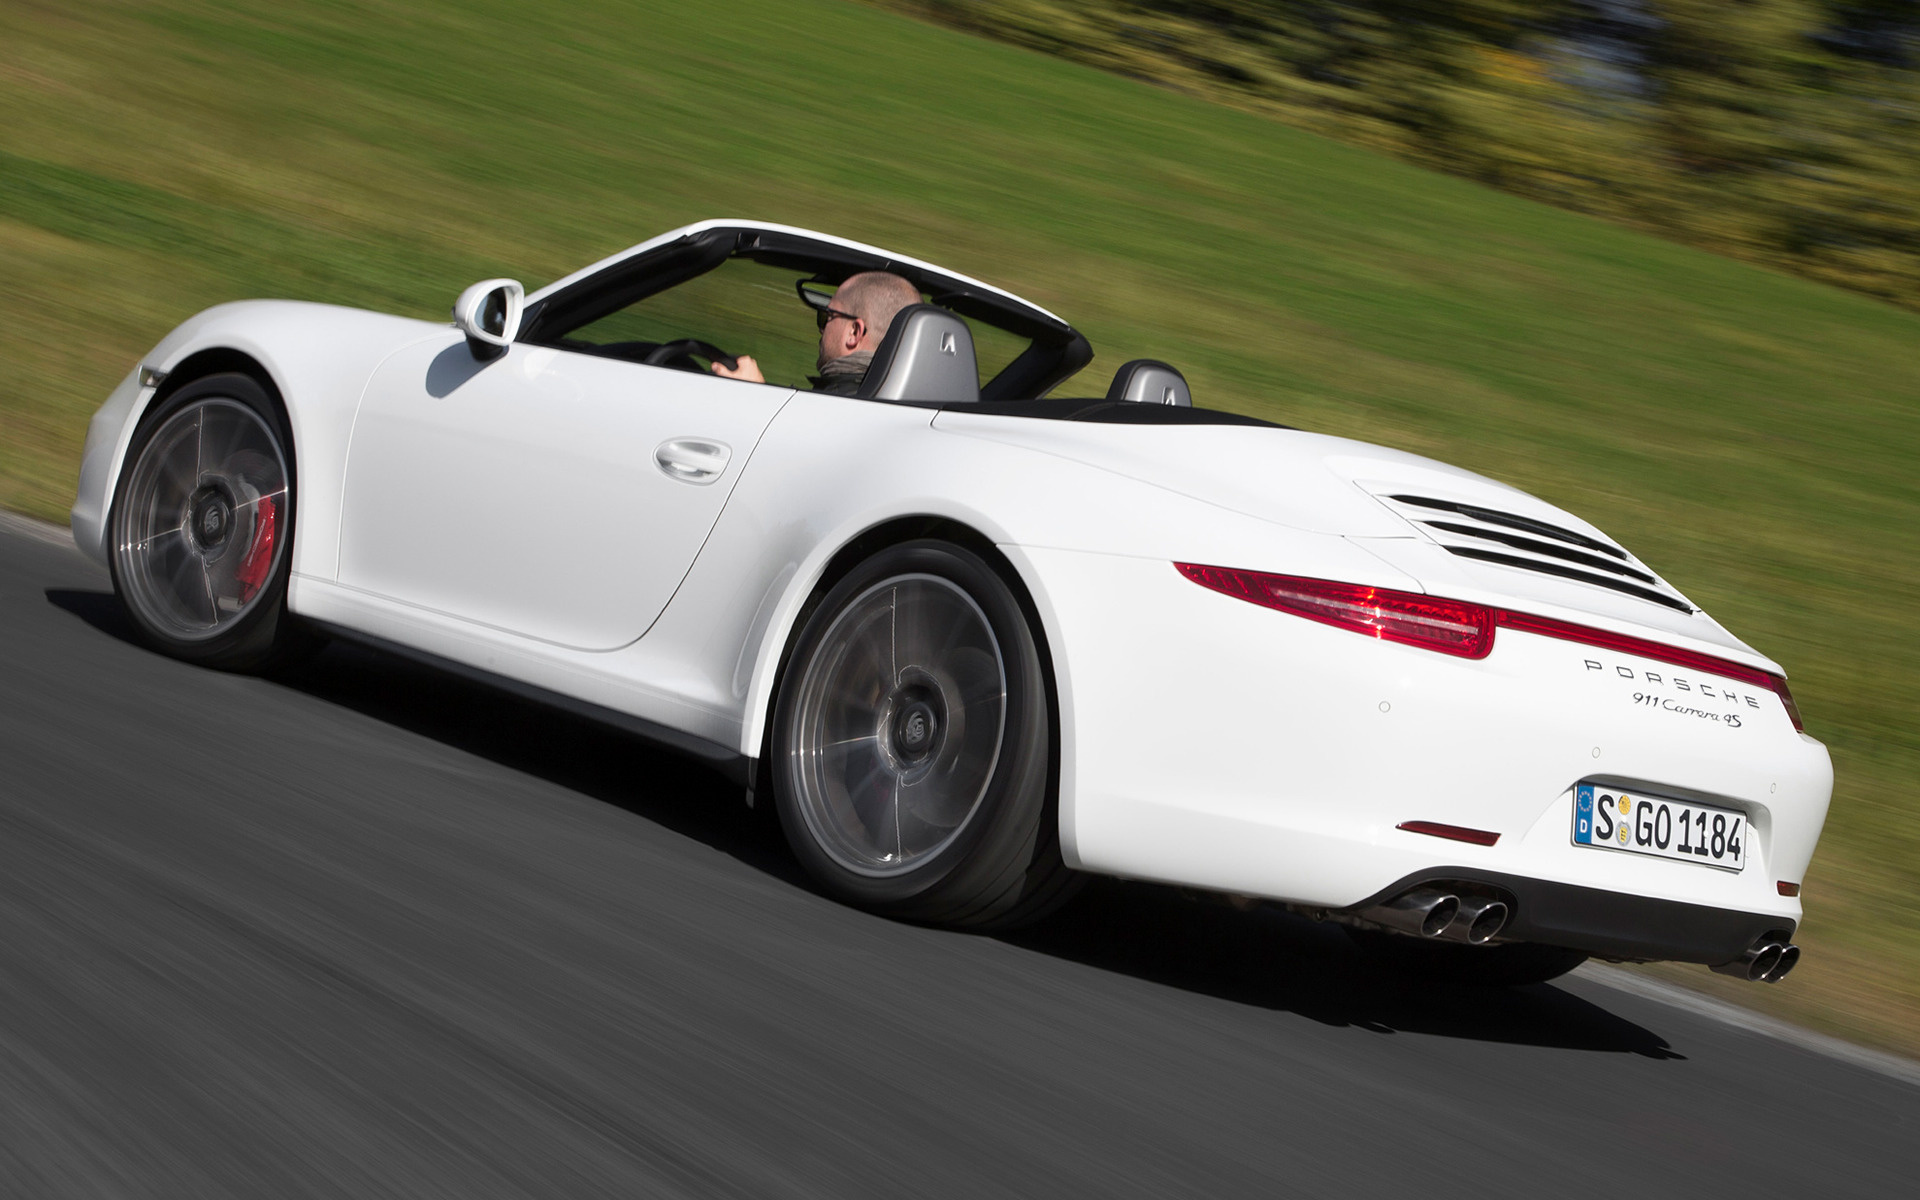 Porsche 911 carrera s cabriolet 2012 wallpapers and hd - Porsche 911 carrera s wallpaper ...